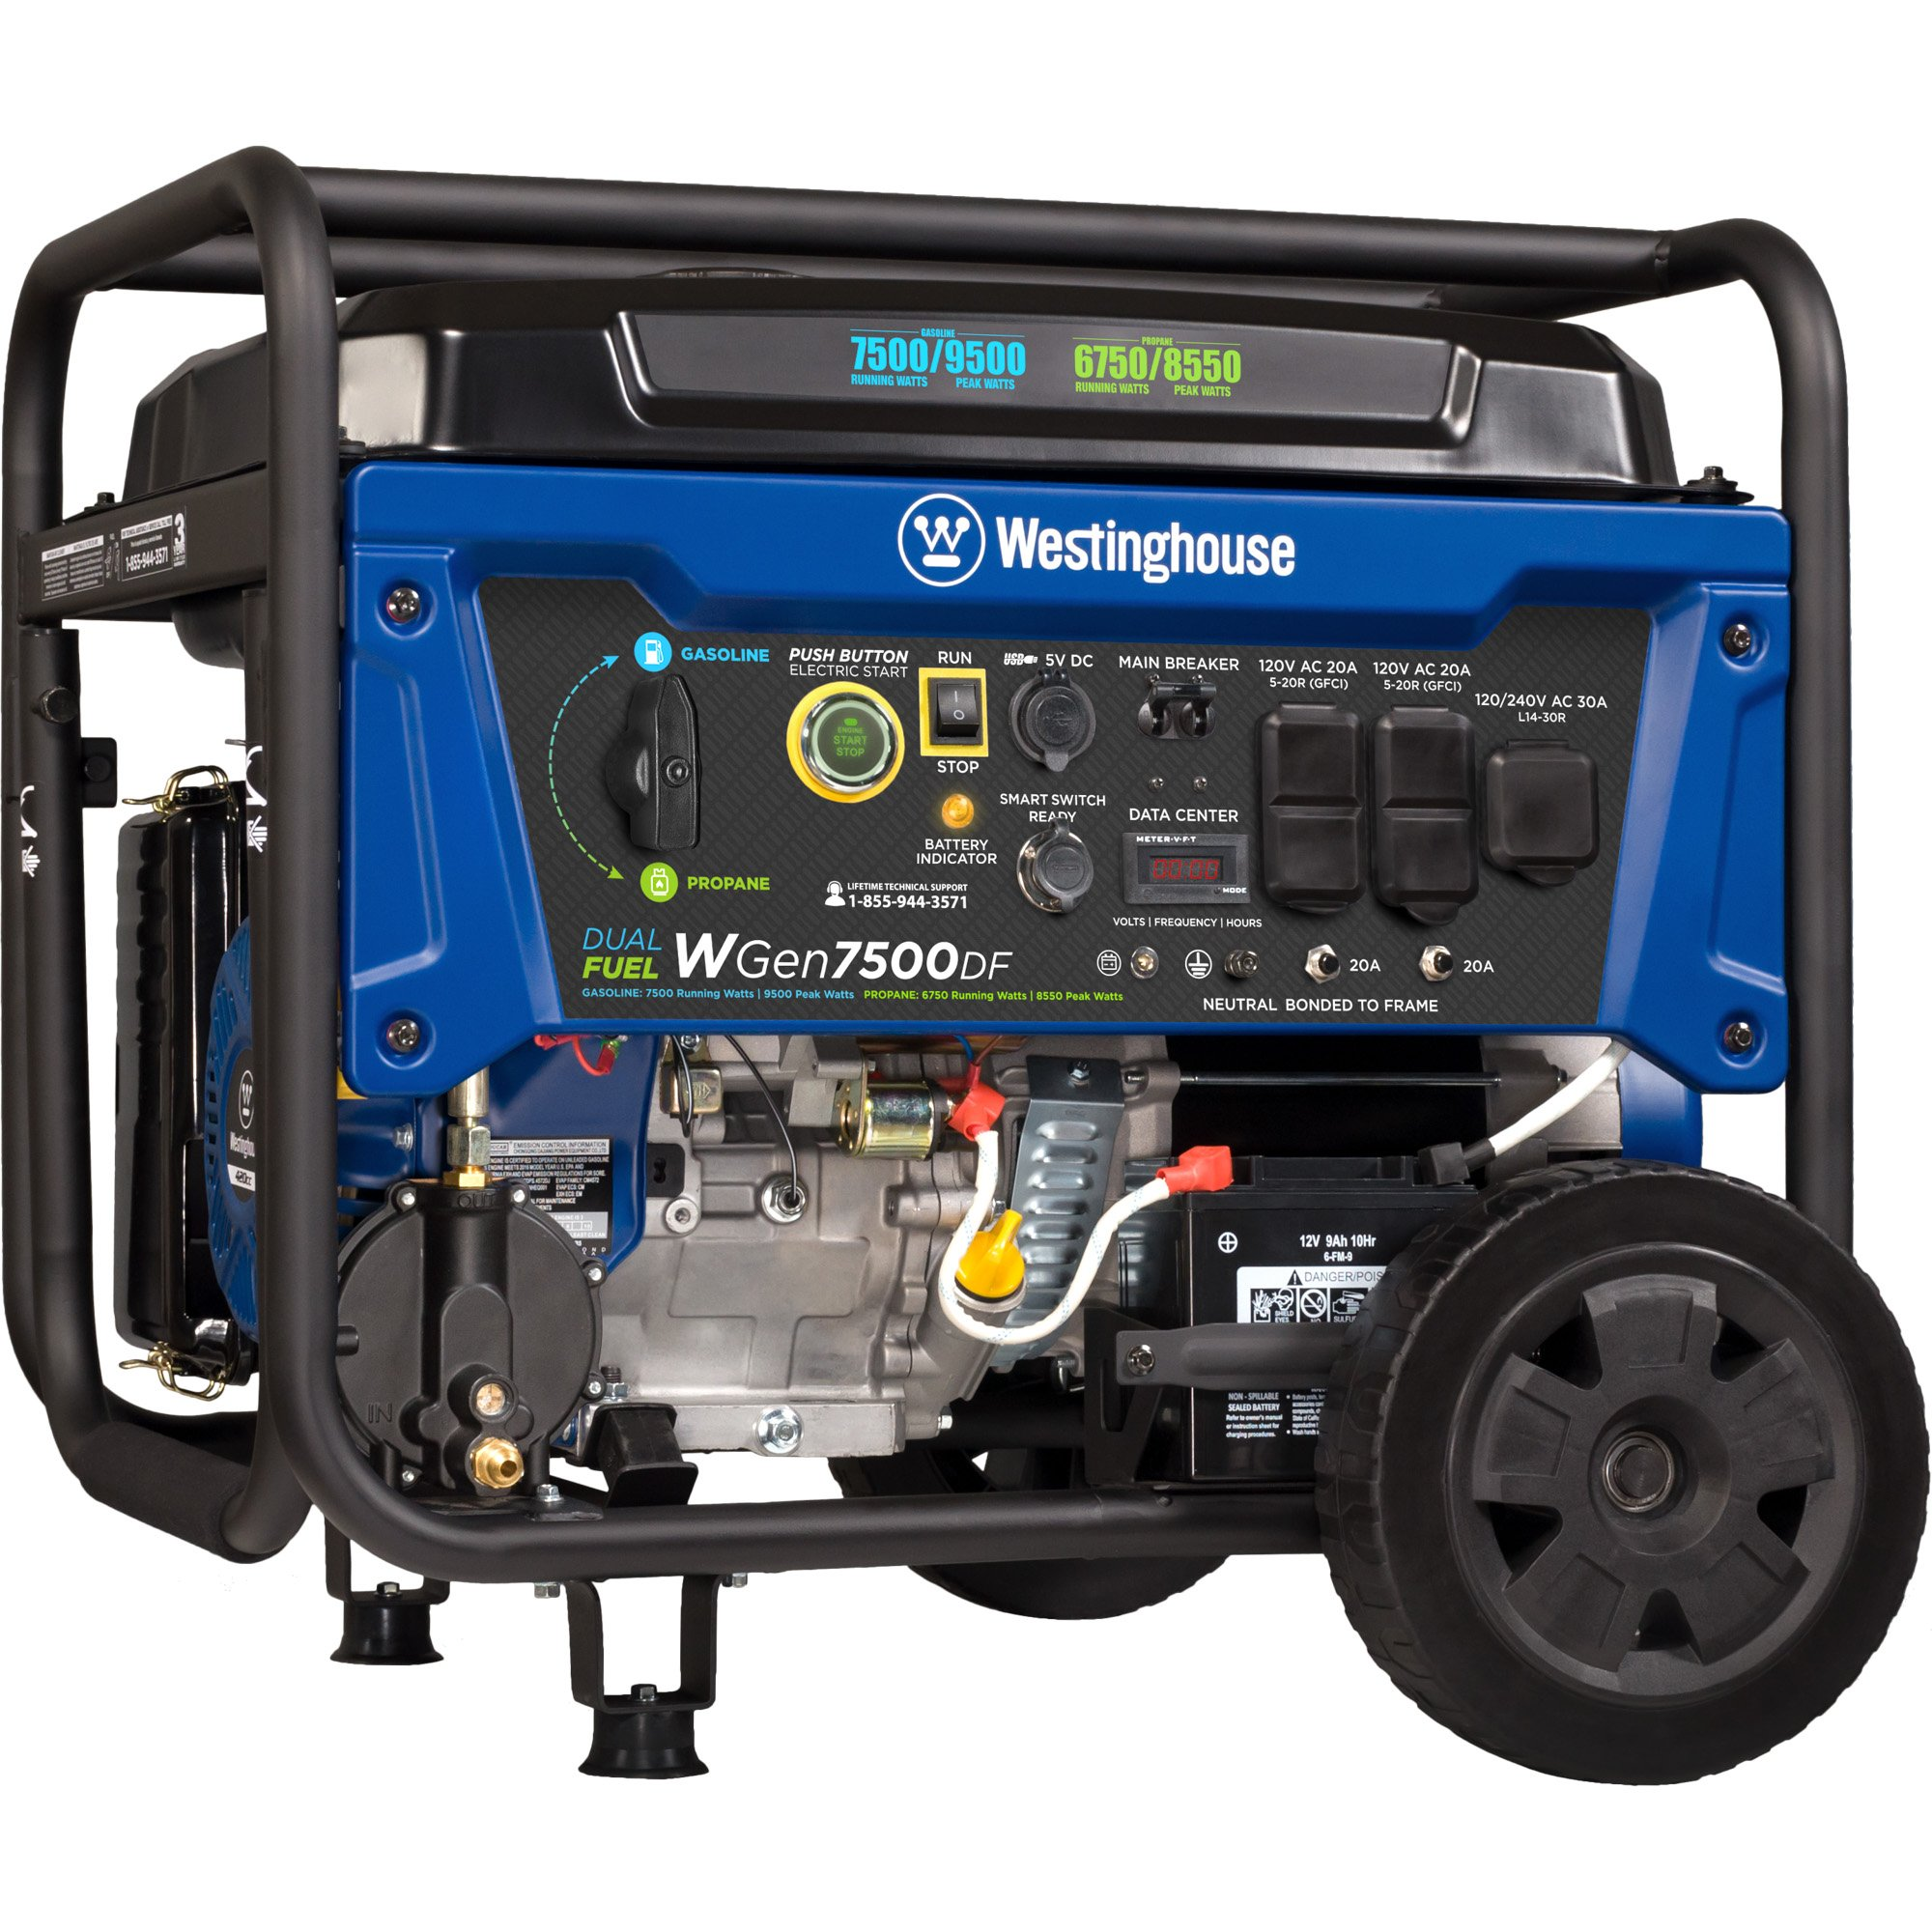 Westinghouse WGen7500DF Dual Fuel Portable Generator – 7500 Rated Watts & 9500 Peak Watts – Gas Or Propane Powered – CARB Compliant